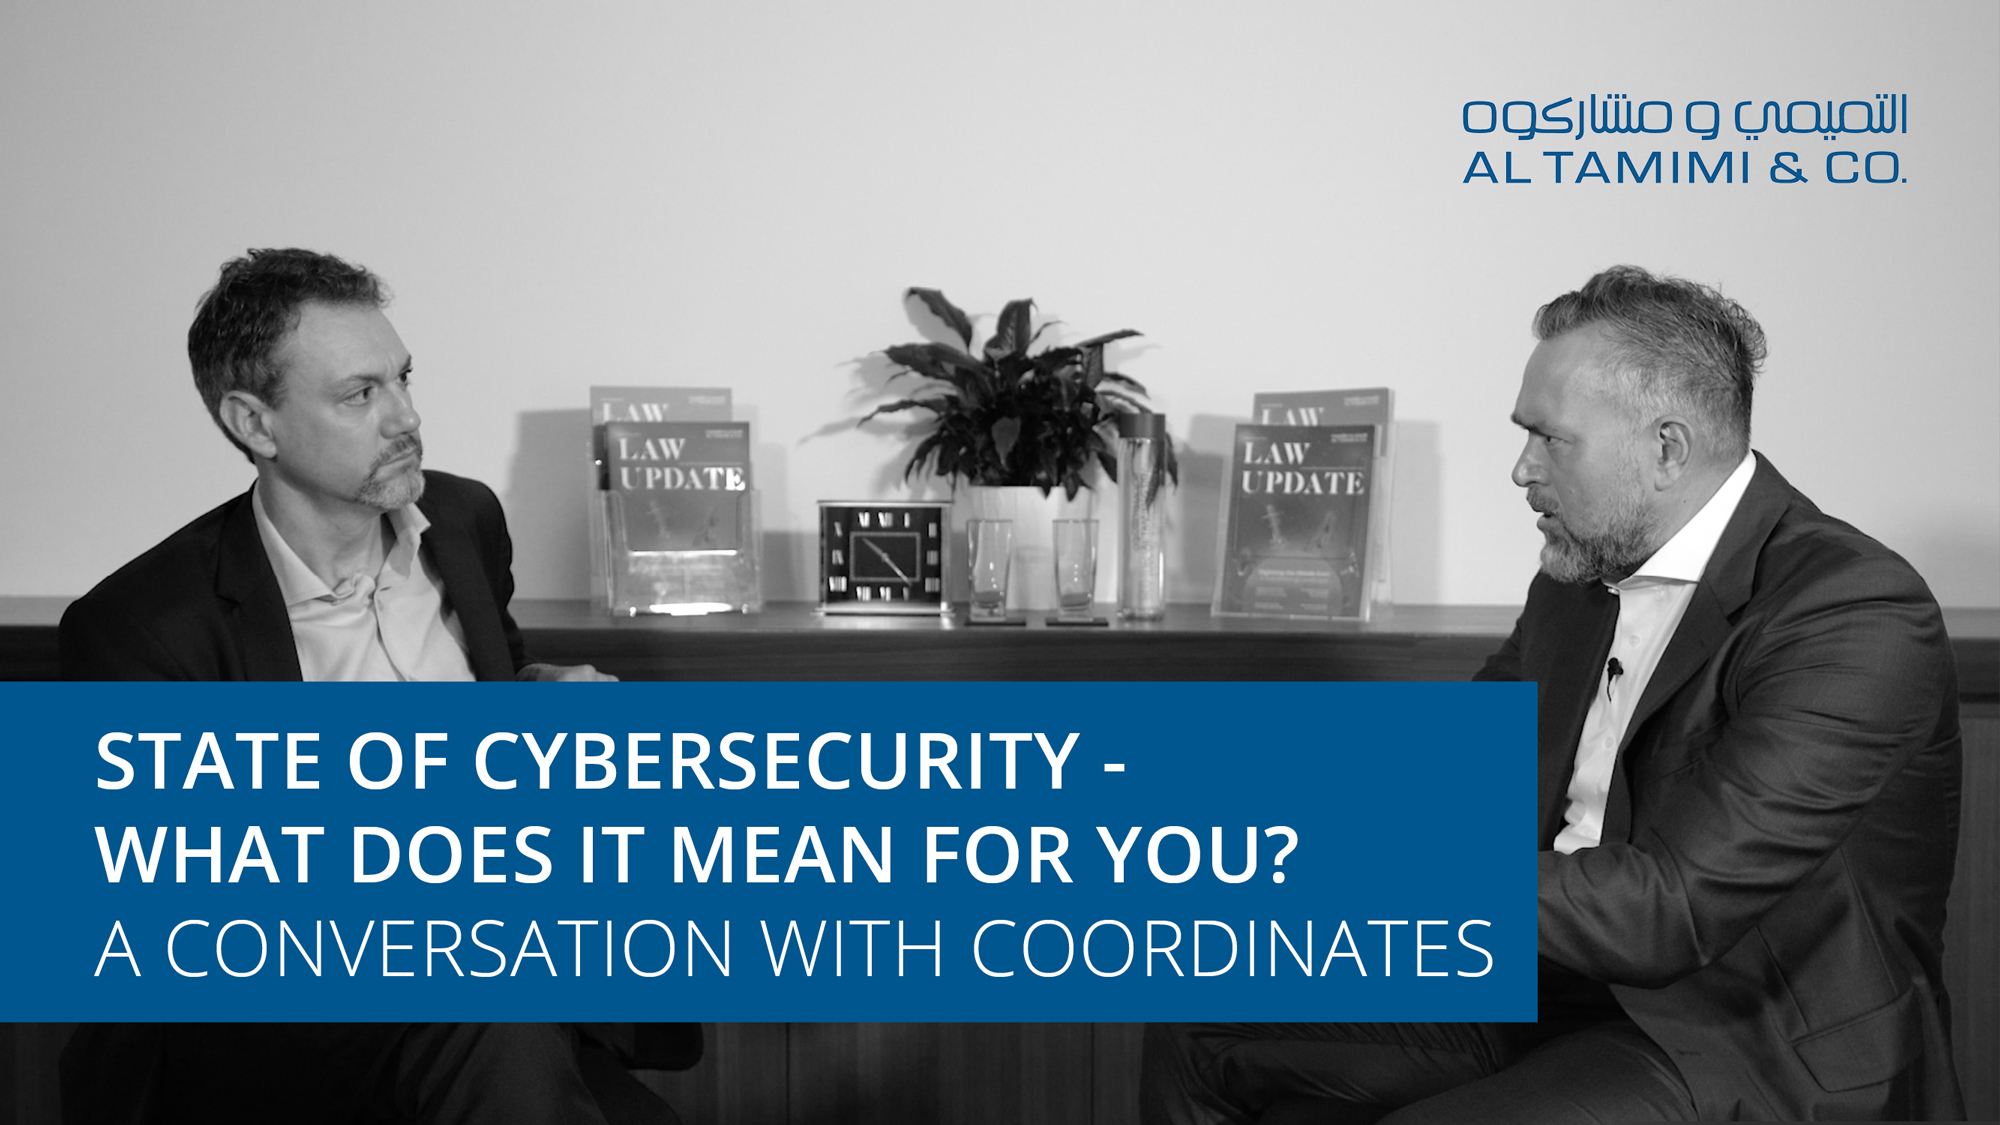 Part 3: State of Cybersecurity – What Does It Mean for You?: A Conversation with Coordinates